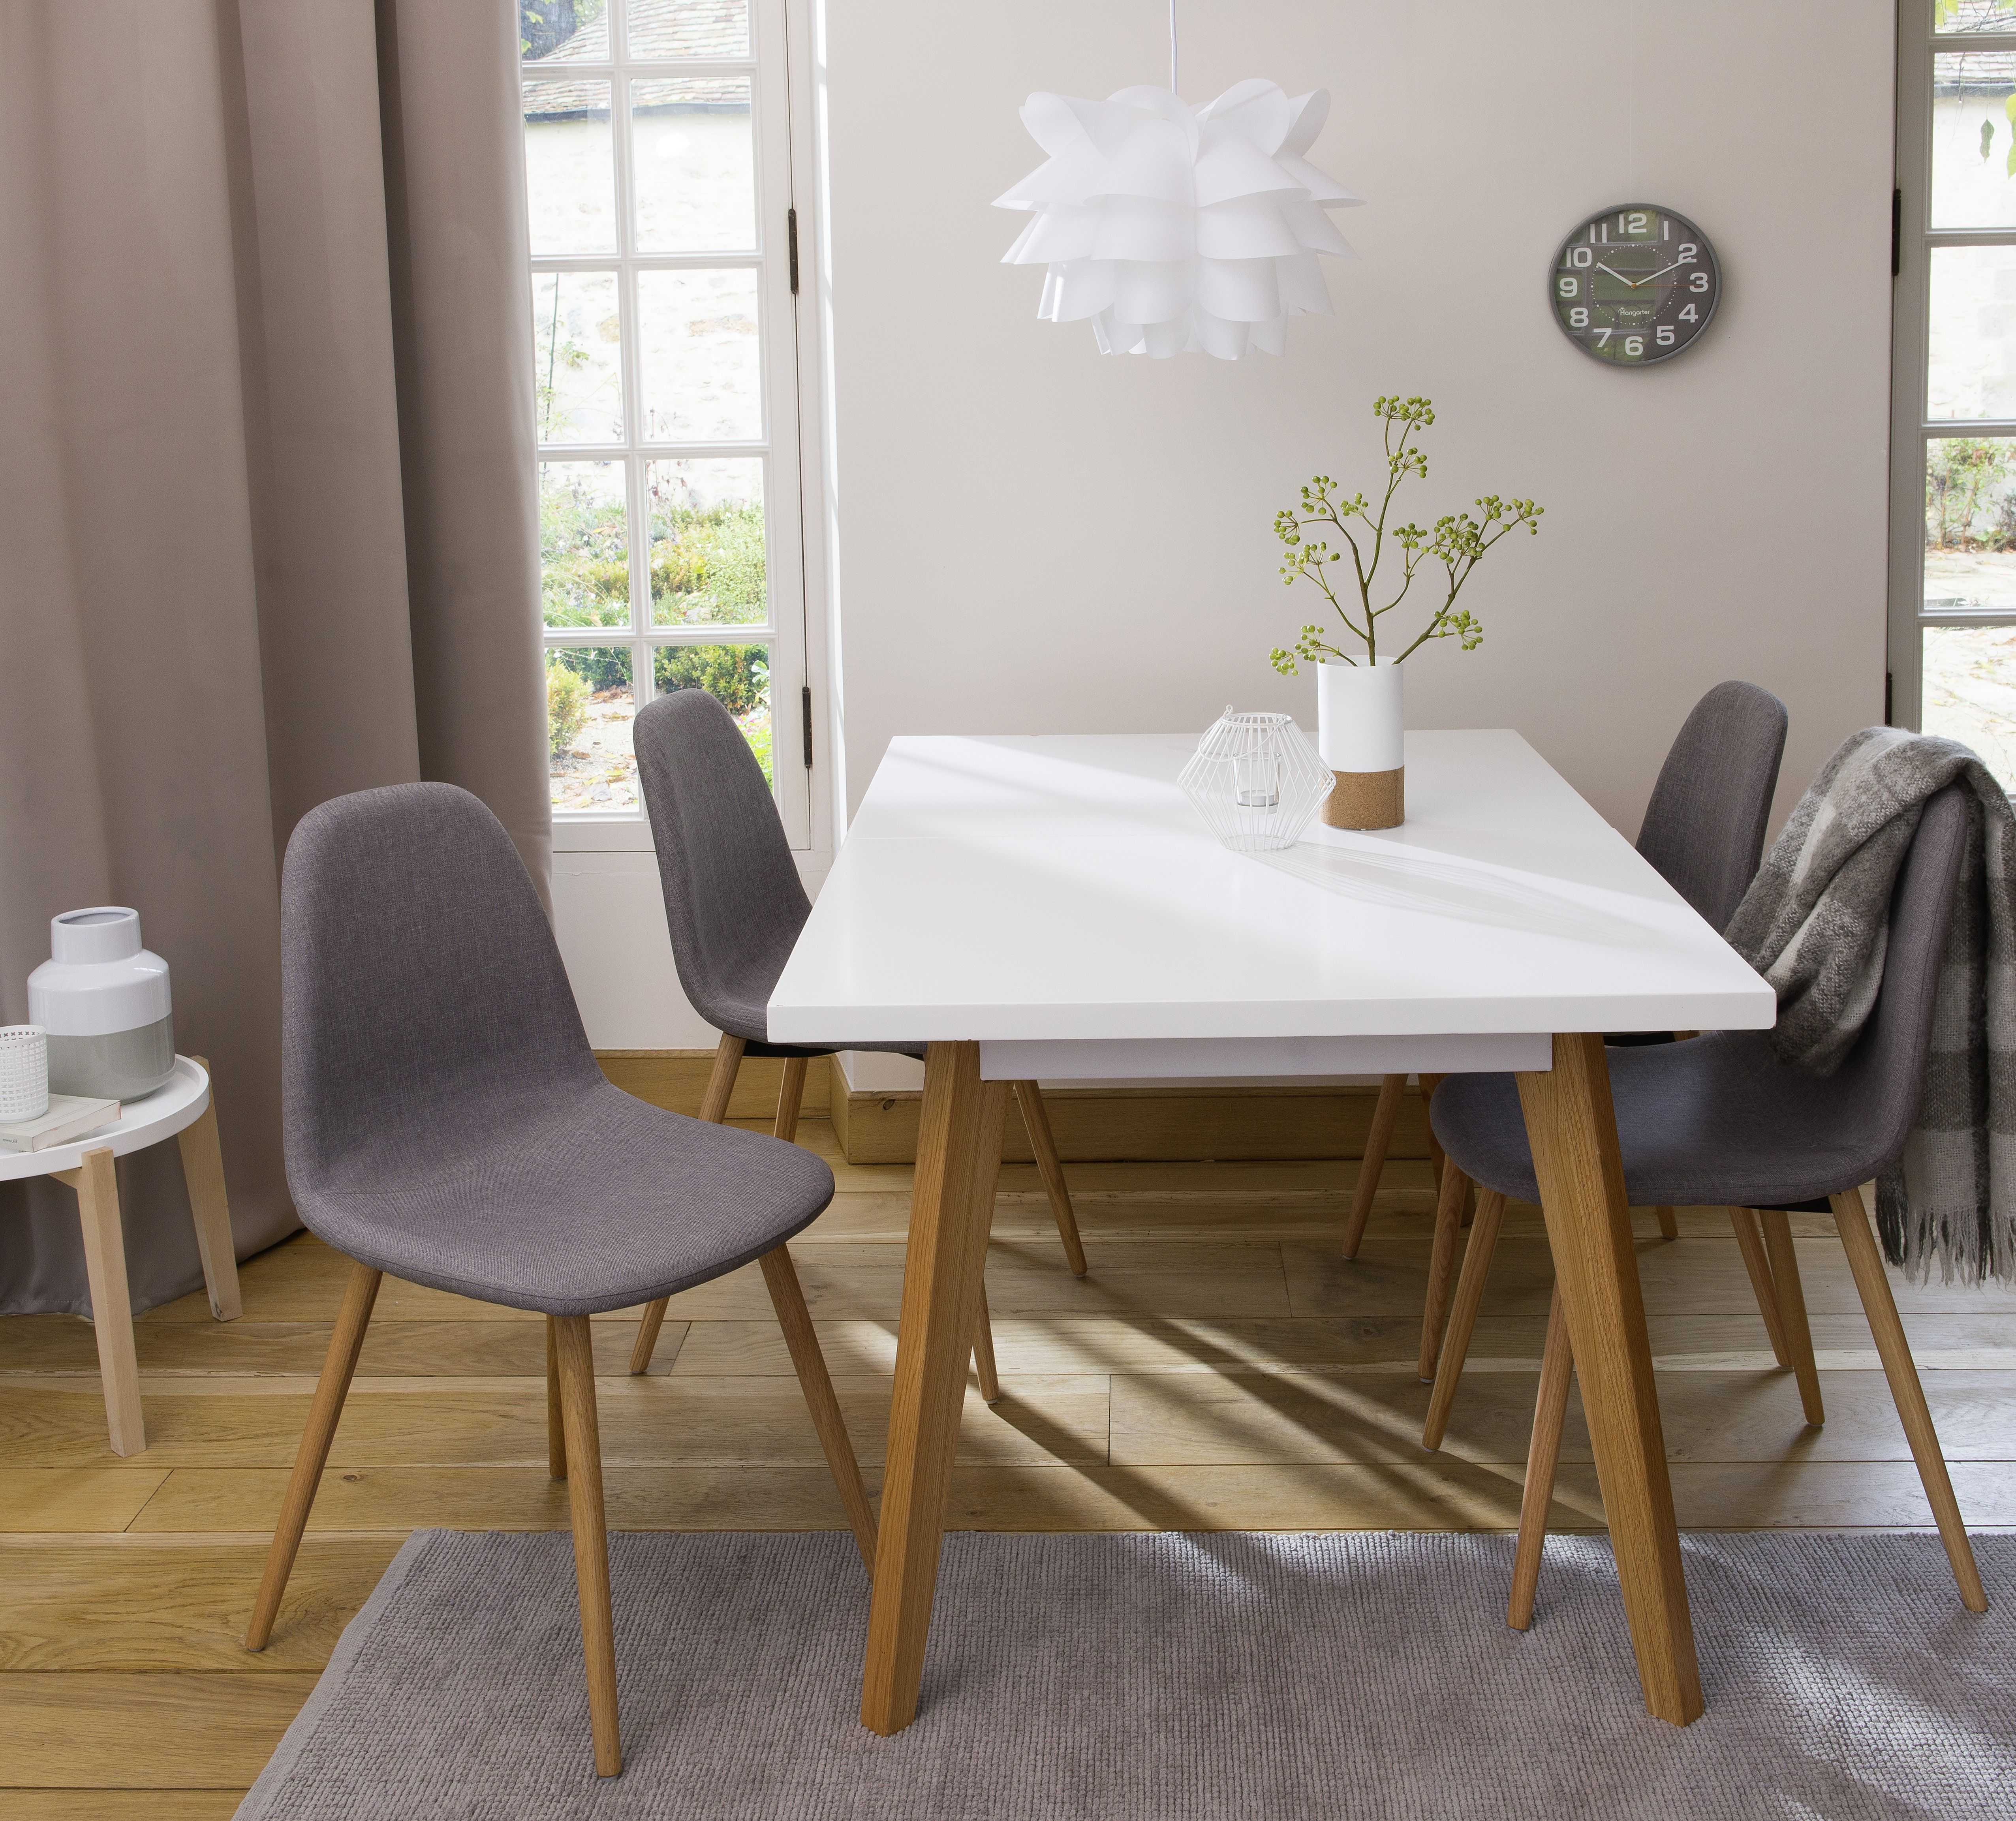 Salle A Manger Design Table Laquee Blanche Chaise En Tissu Avec Pieds En Pin Massif Salle A Manger Moderne Salle A Manger Design Decoration Salle A Manger